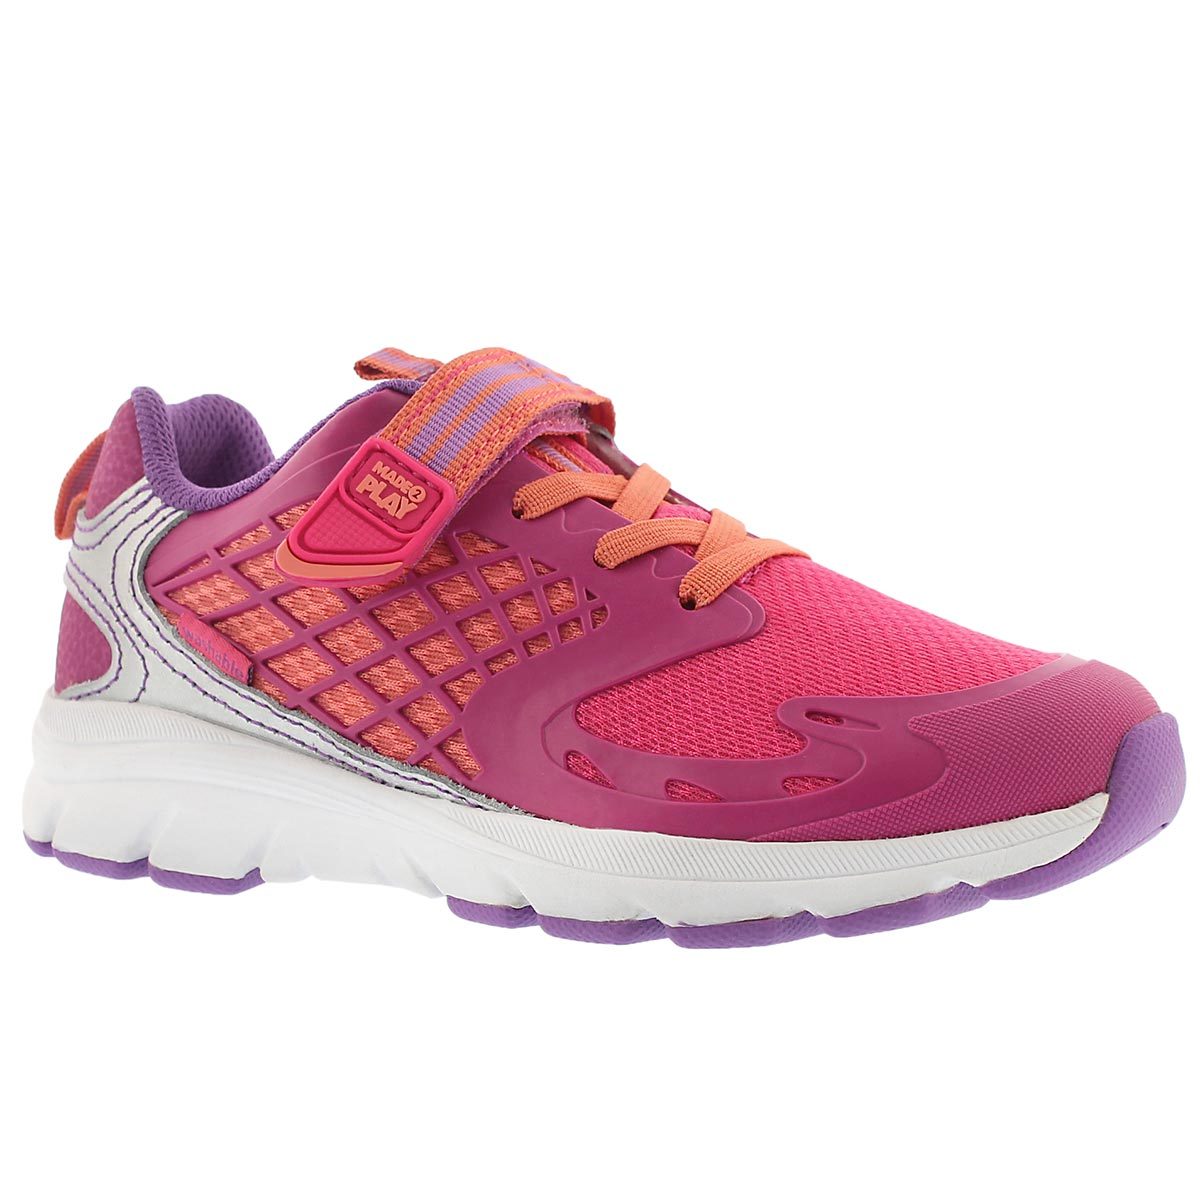 Girls' M2P CANNAN pink sneakers